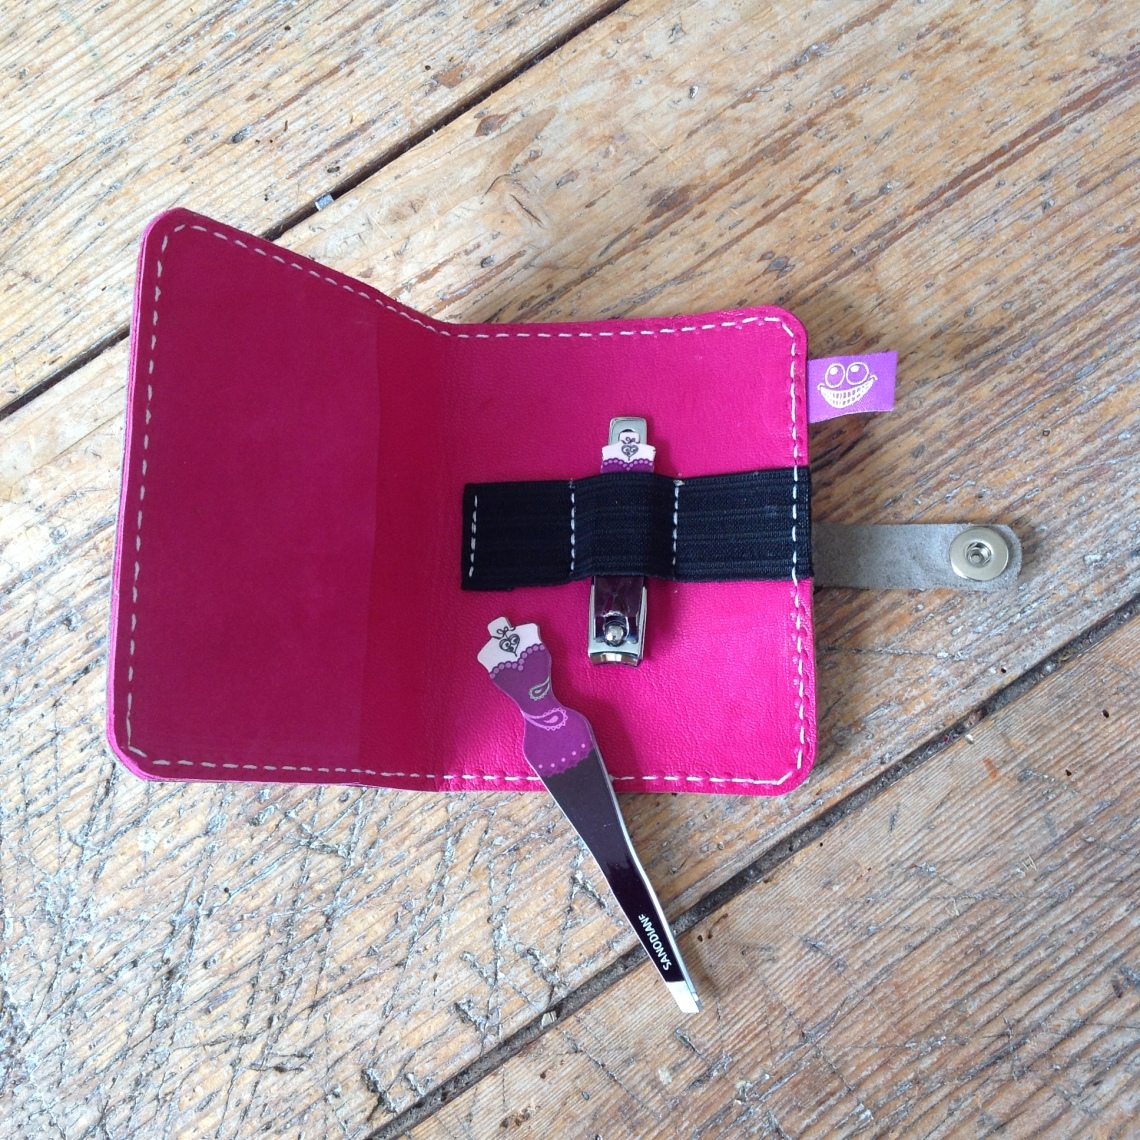 Leather cover for manicure set - inside